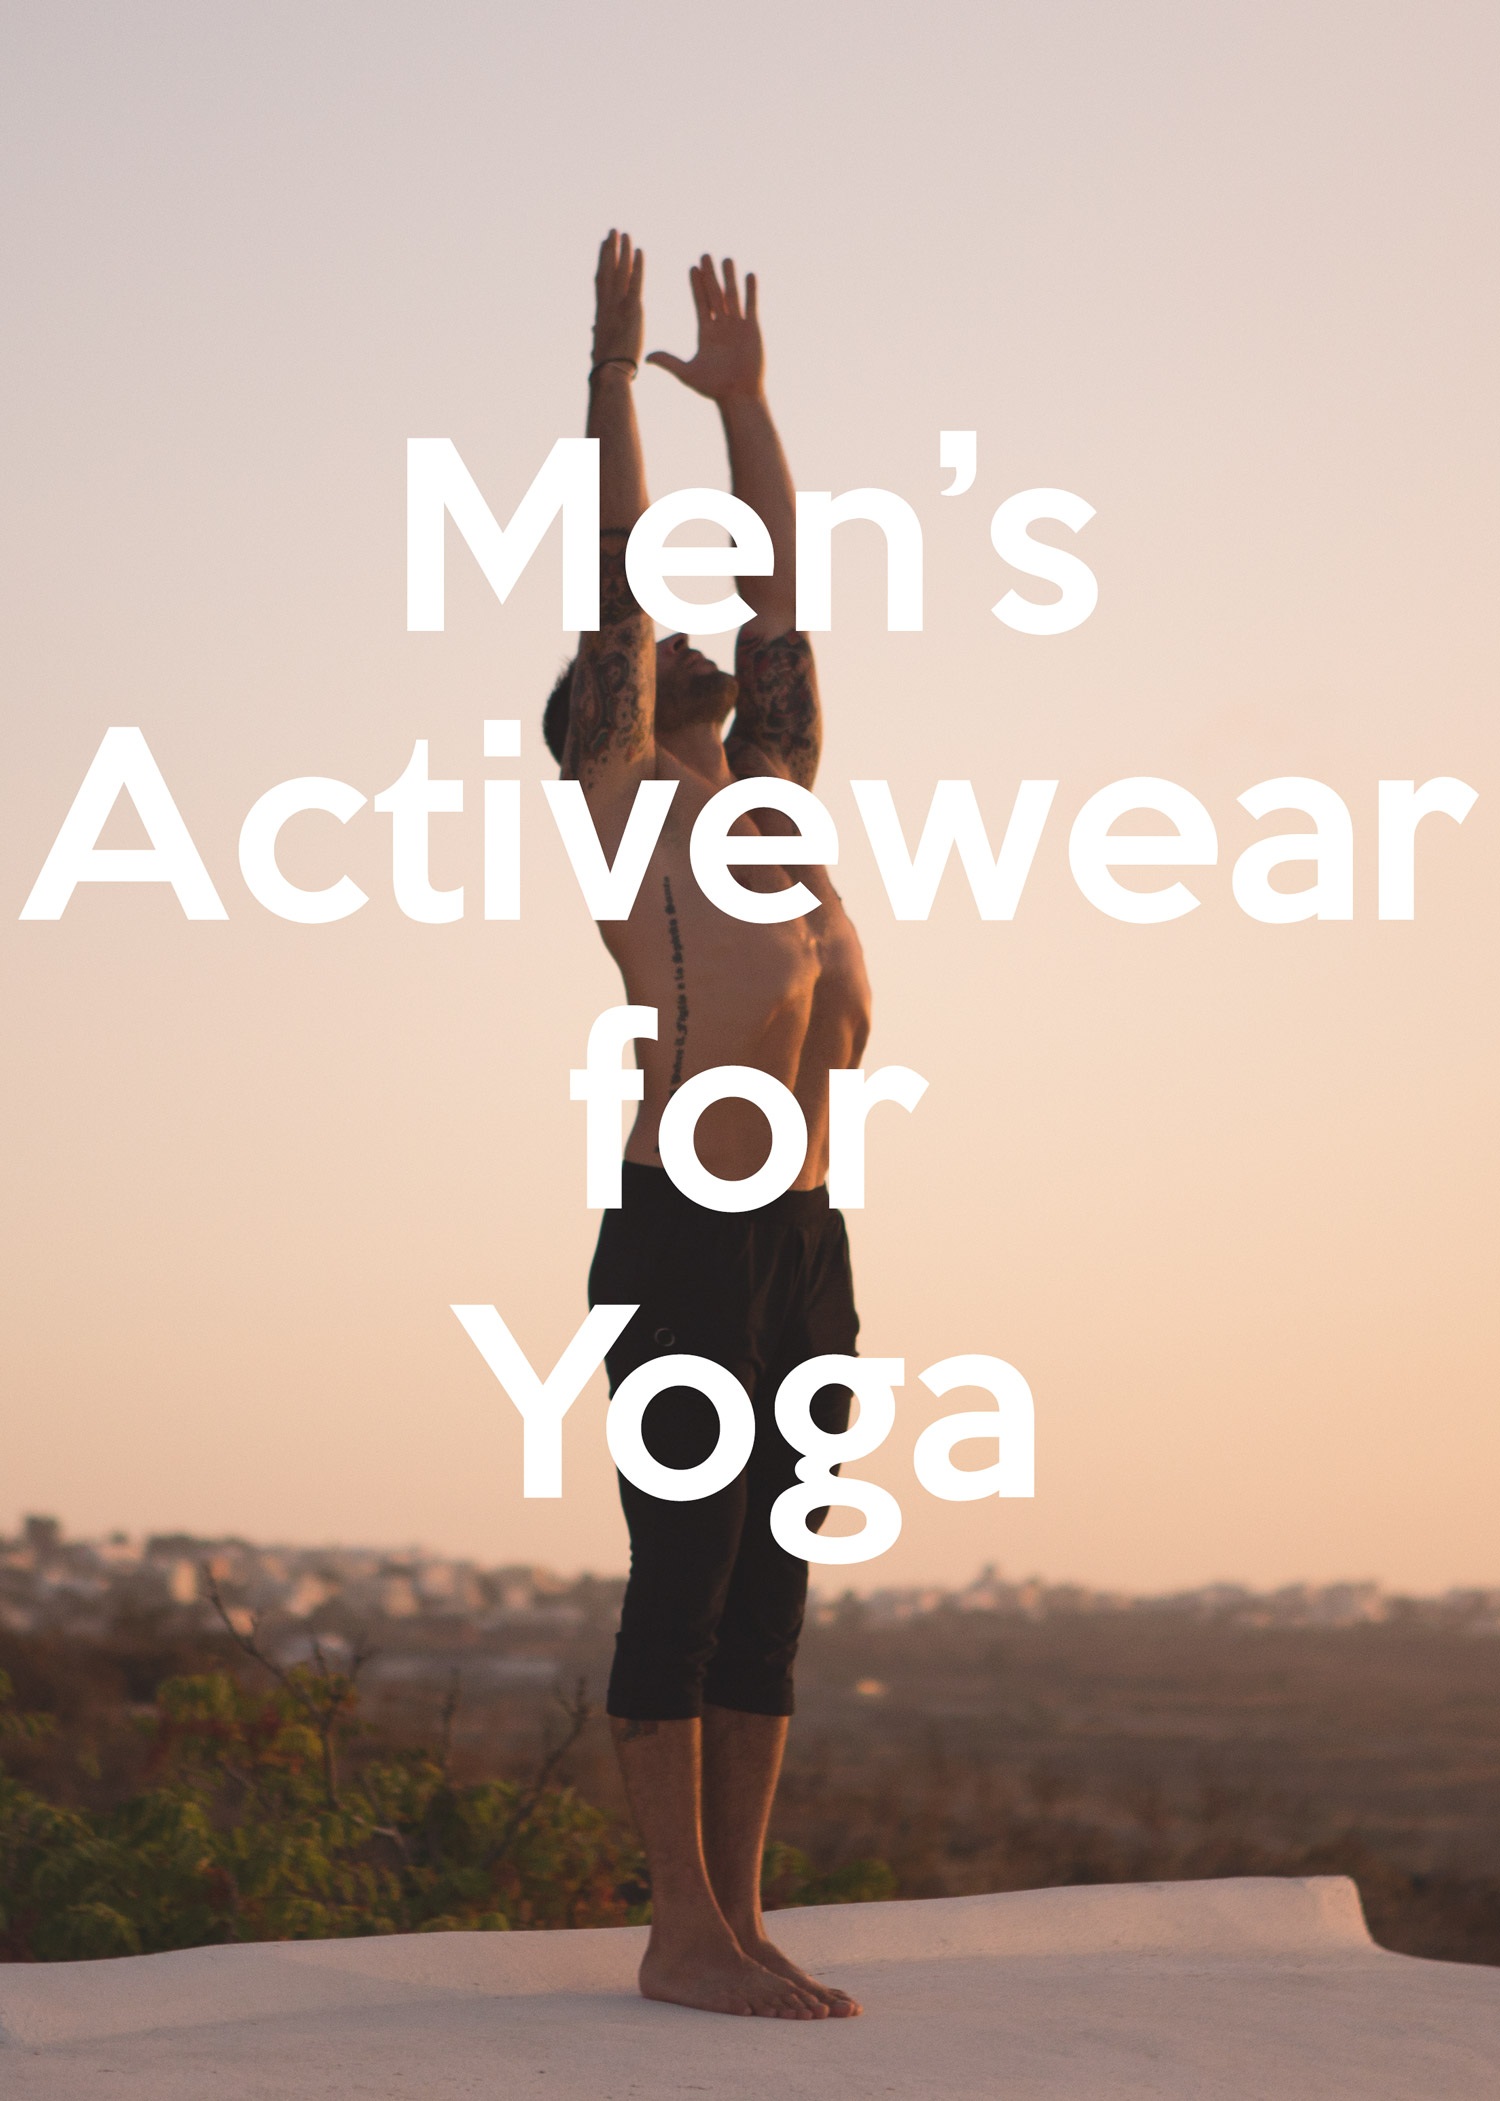 Men's activewear for yoga